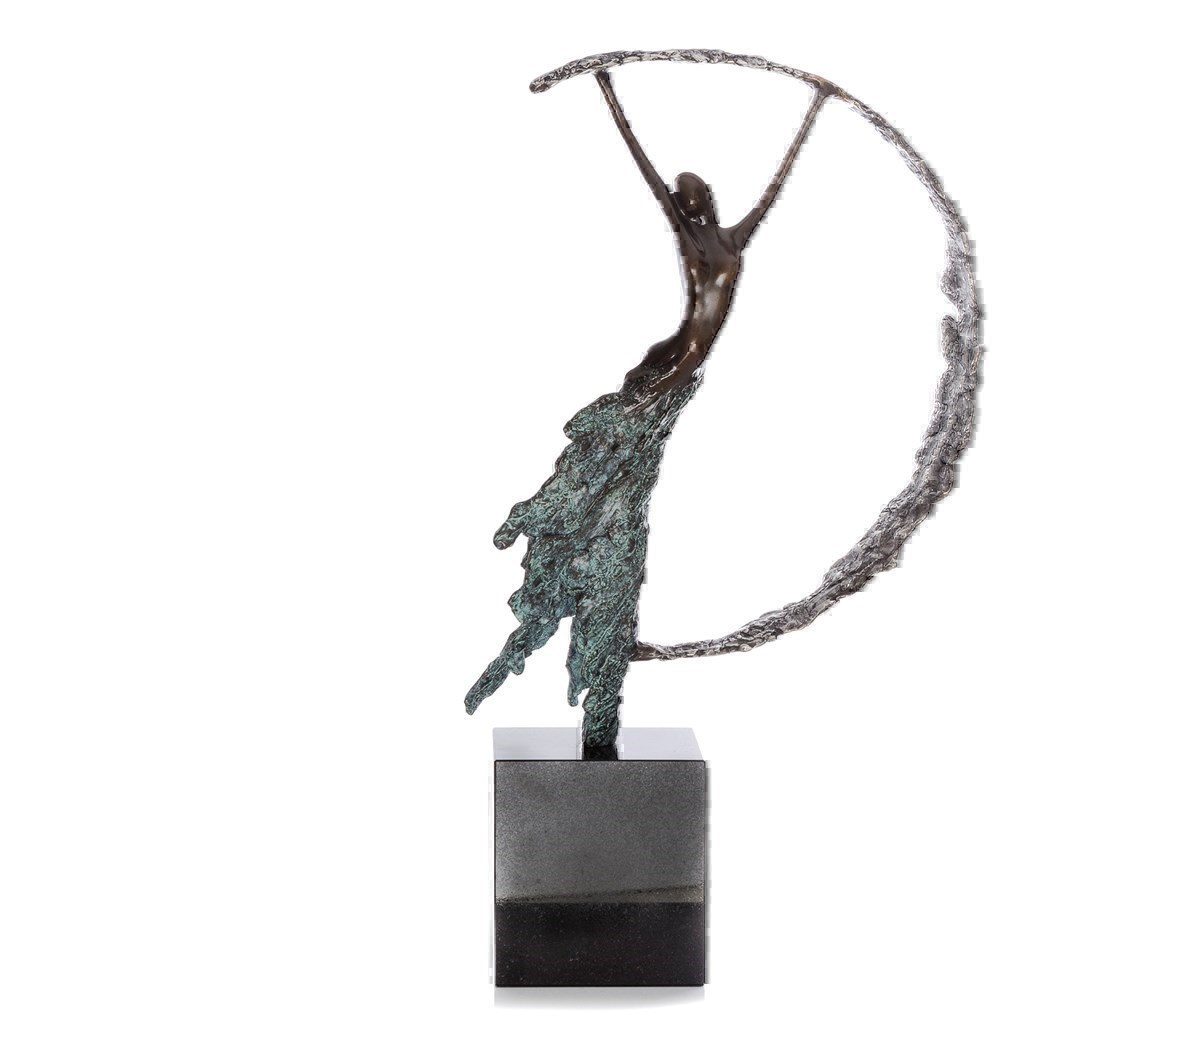 Moonlight by Jennine Parker - Bronze Sculpture sized 12x19 inches. Available from Whitewall Galleries